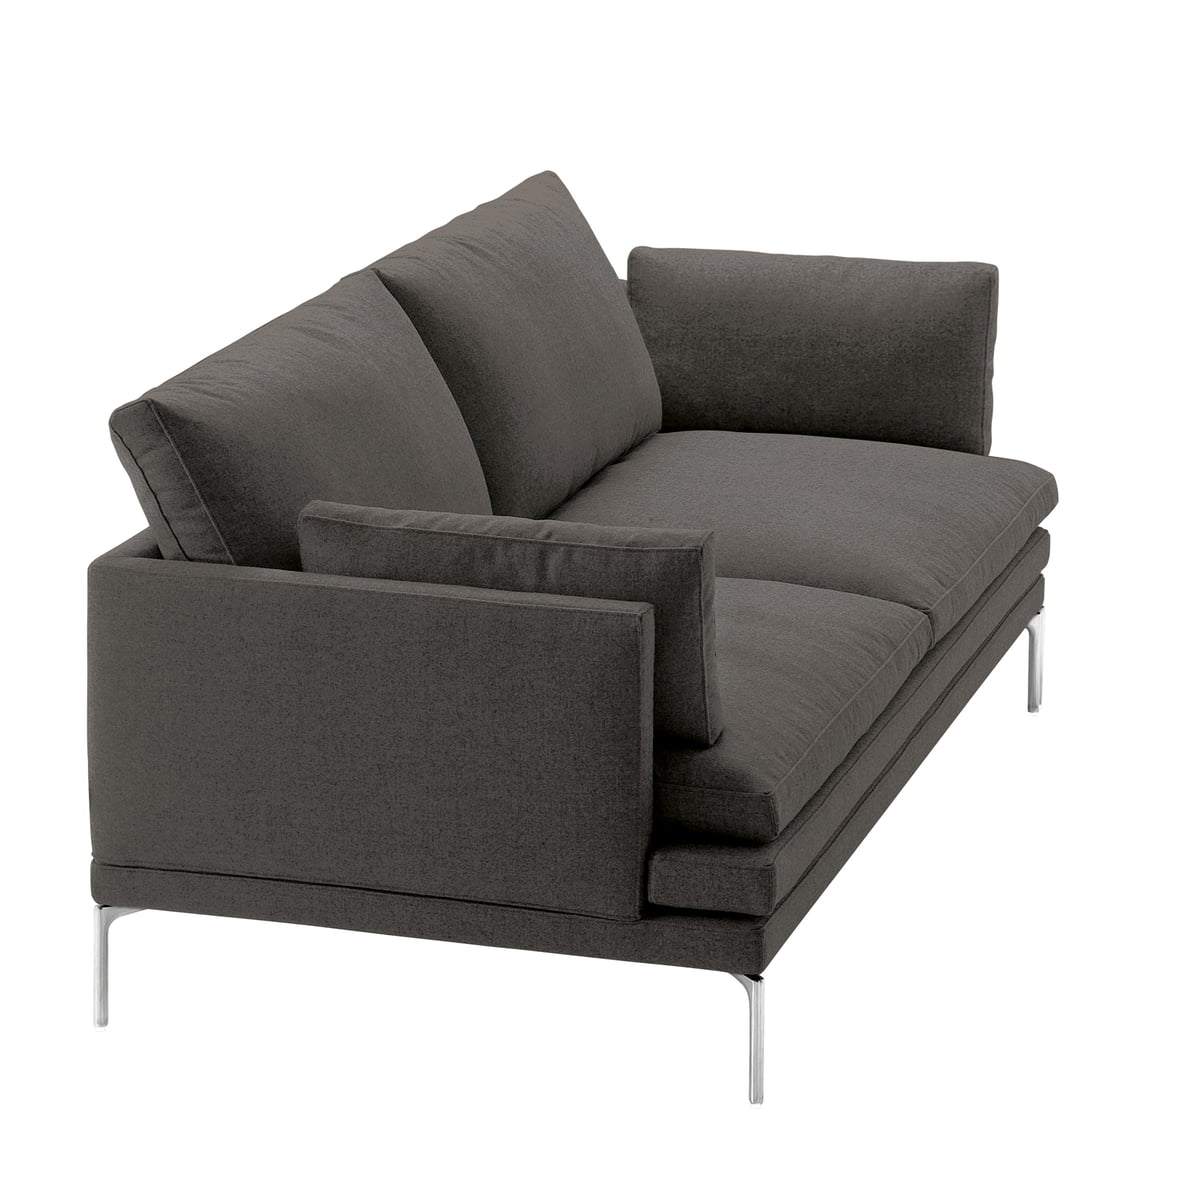 The william sofa by zanotta in the shop for Sofa 120 cm lang